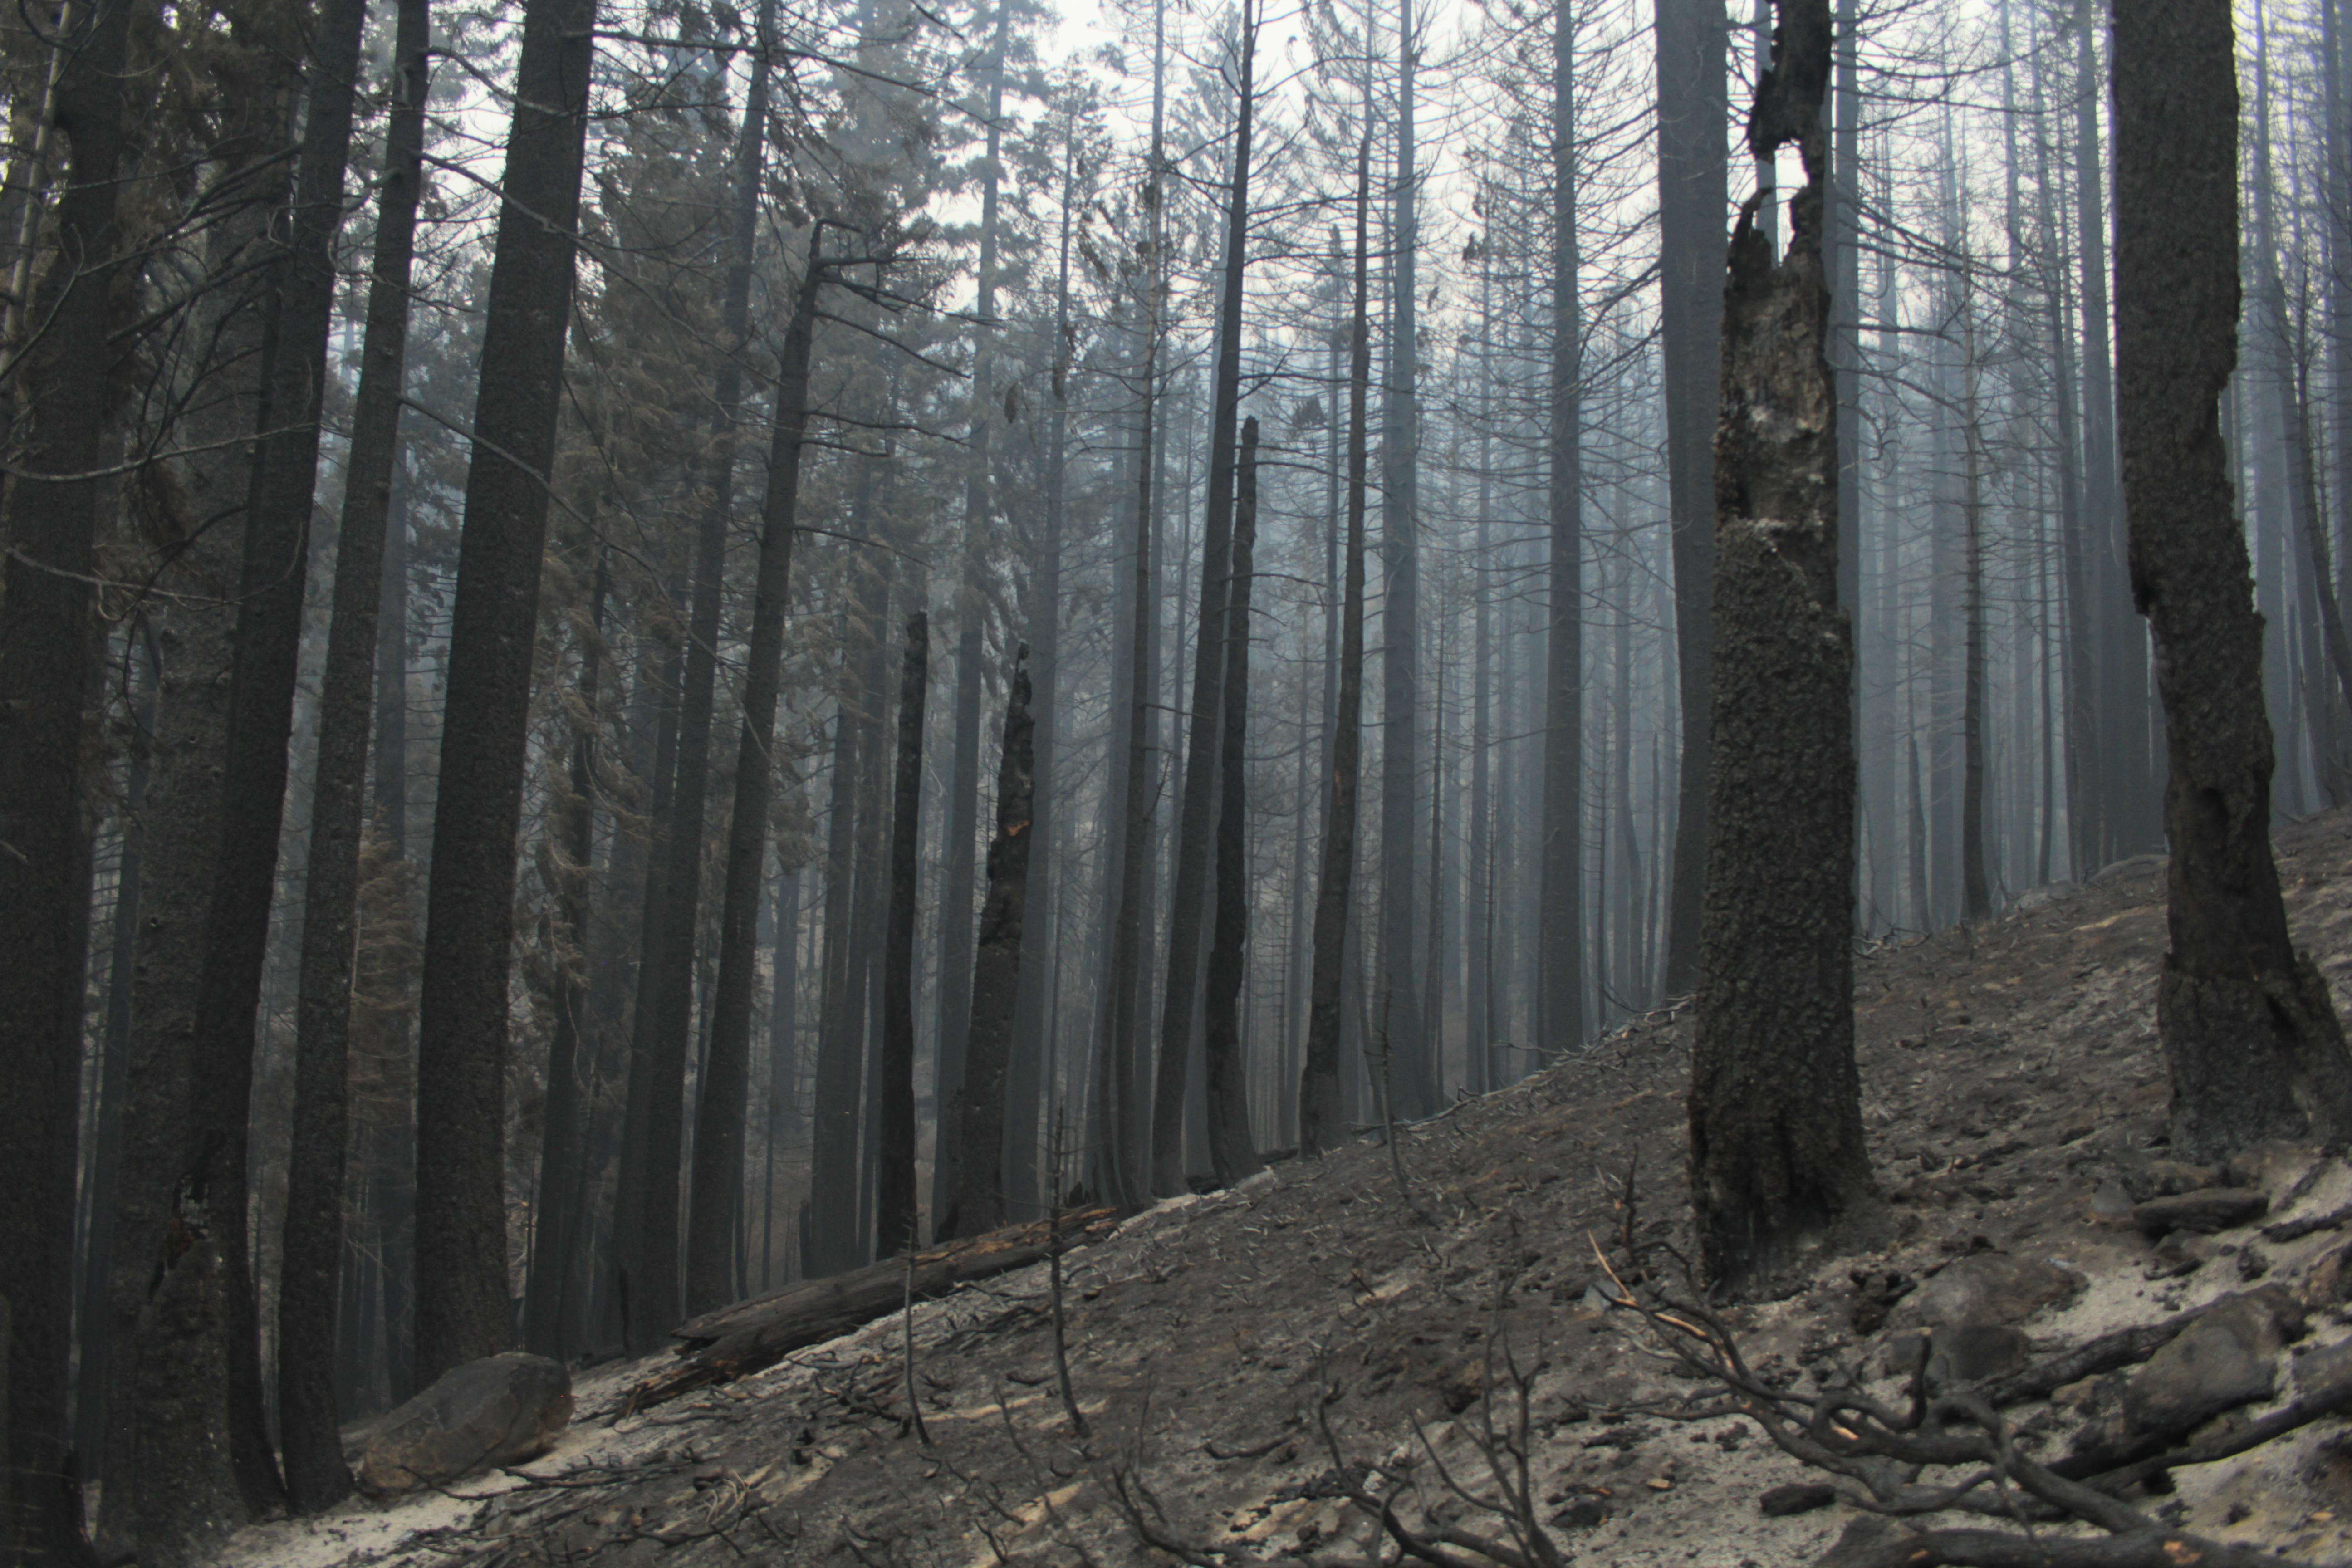 Burned trees and a ground covered in ash.